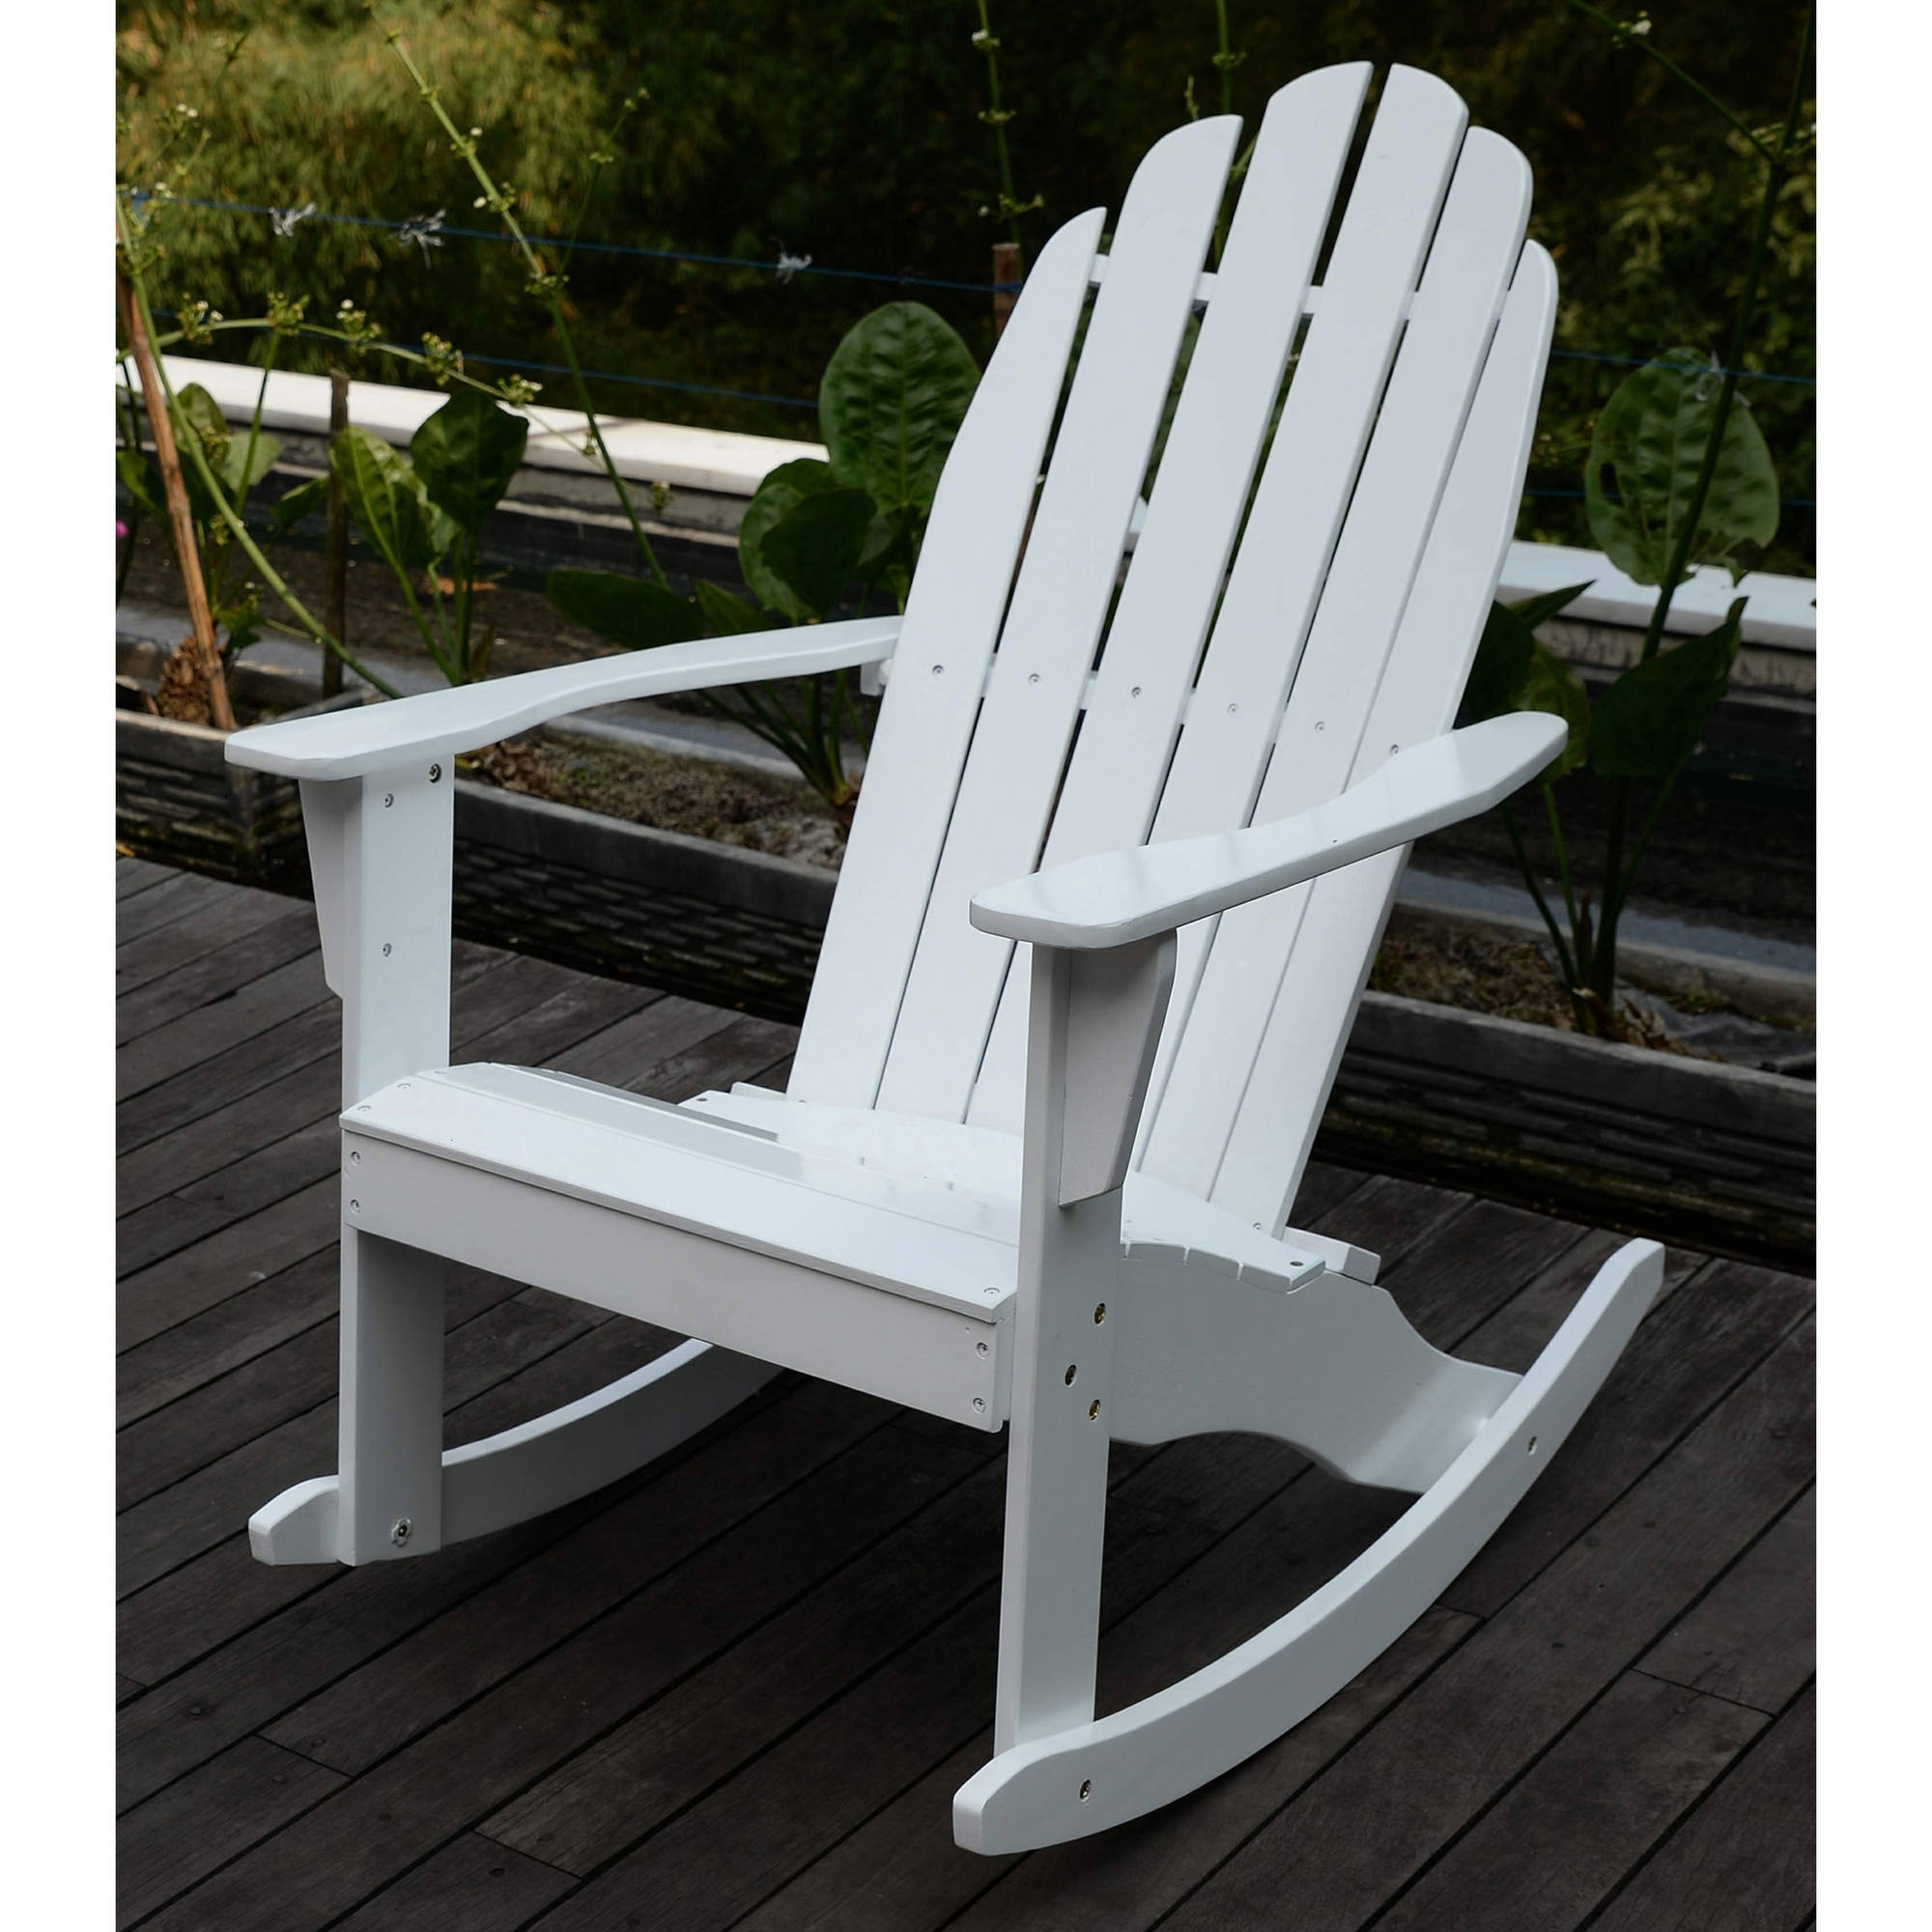 Adirondack Rocking Chair, White – Walmart With Well Known Walmart Rocking Chairs (View 1 of 15)